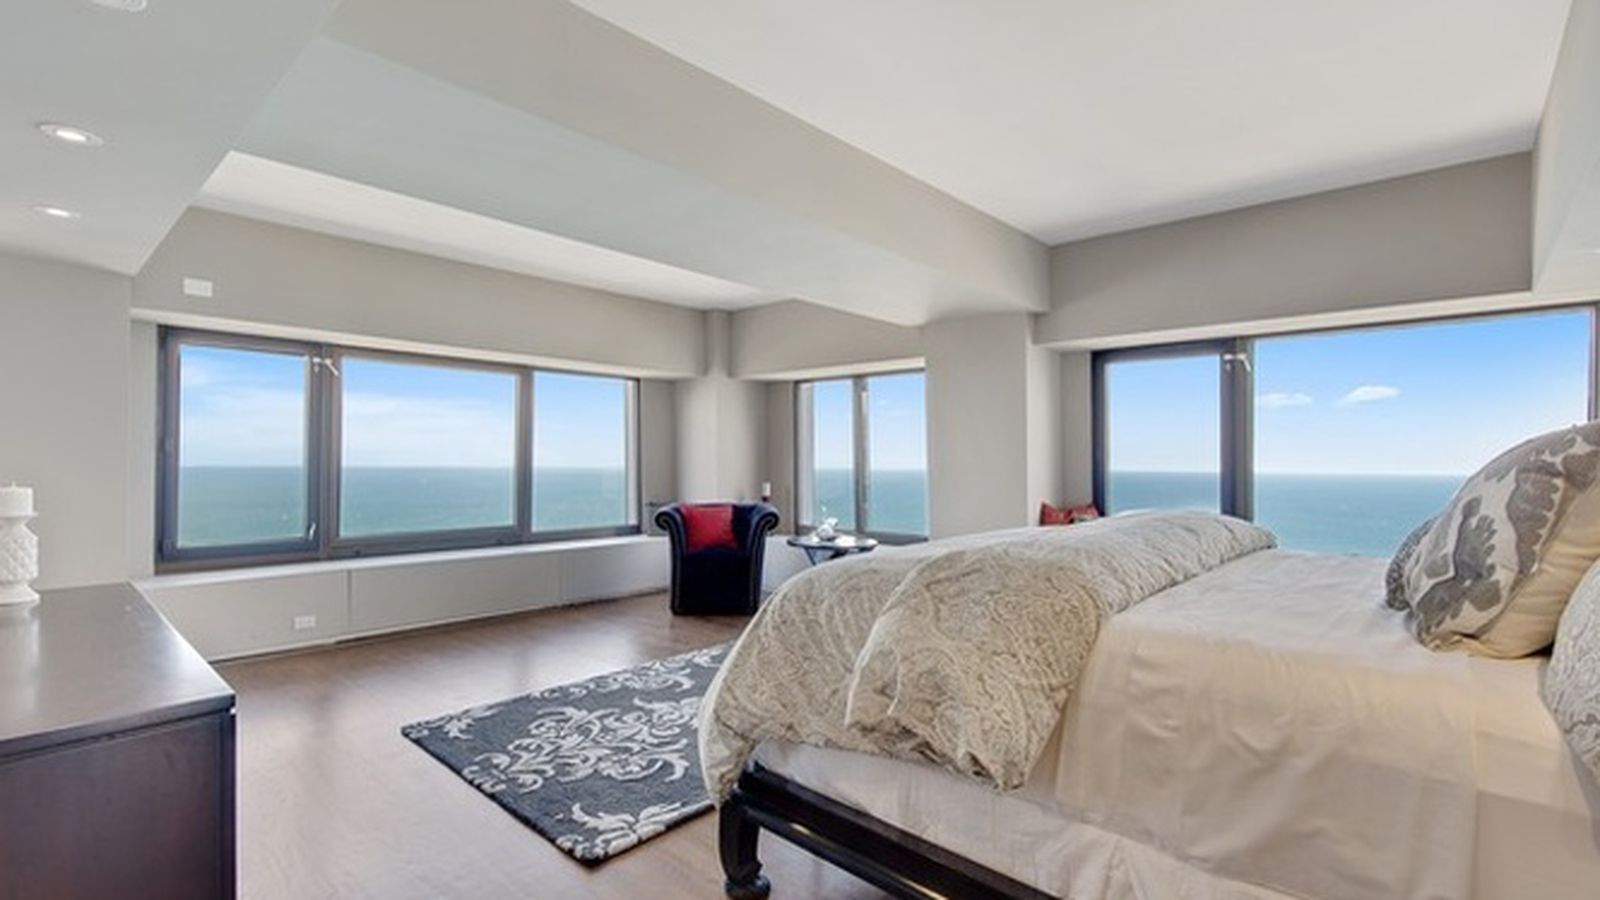 Four-bedroom Condo On The 64th Floor Of Chicago's Hancock